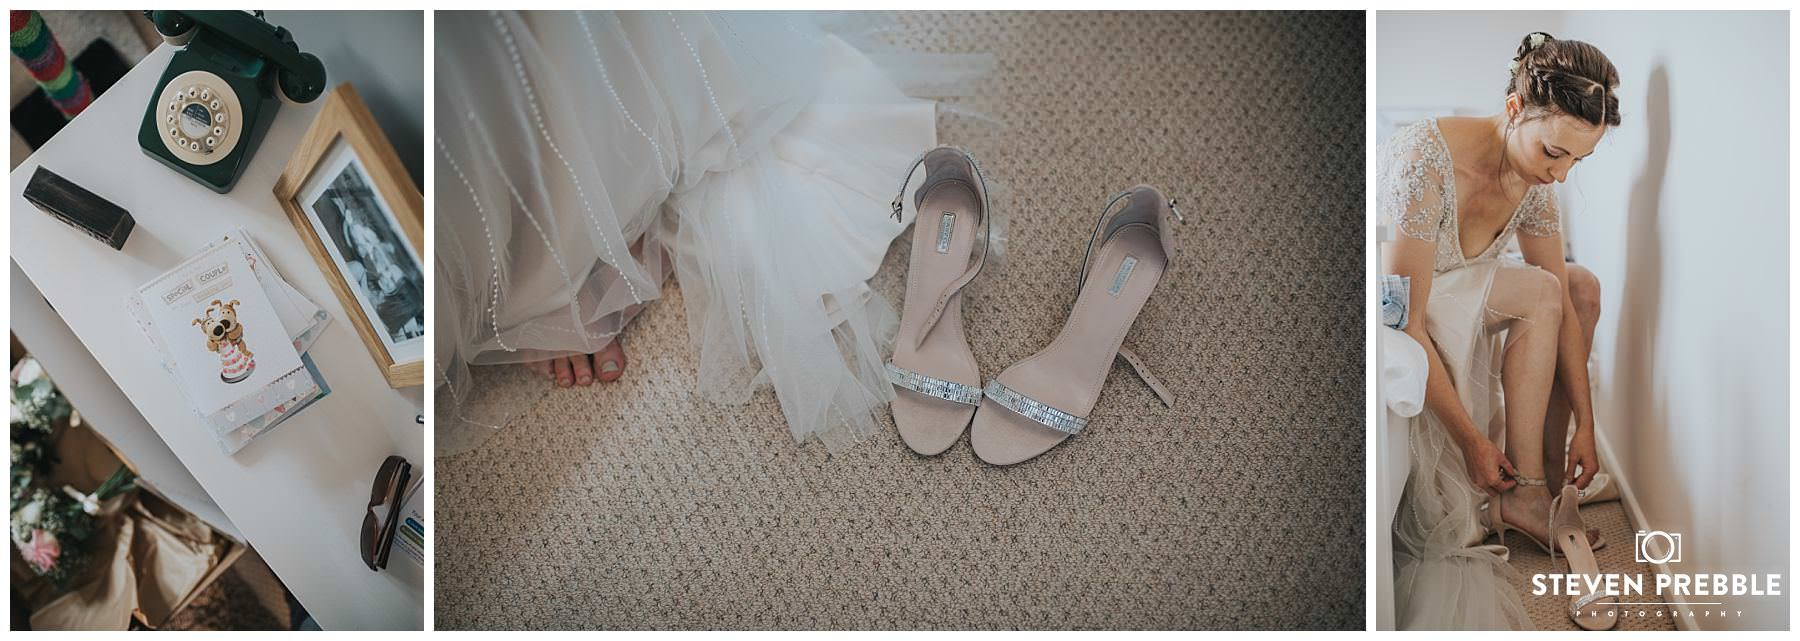 Brides shoes and putting on shoes